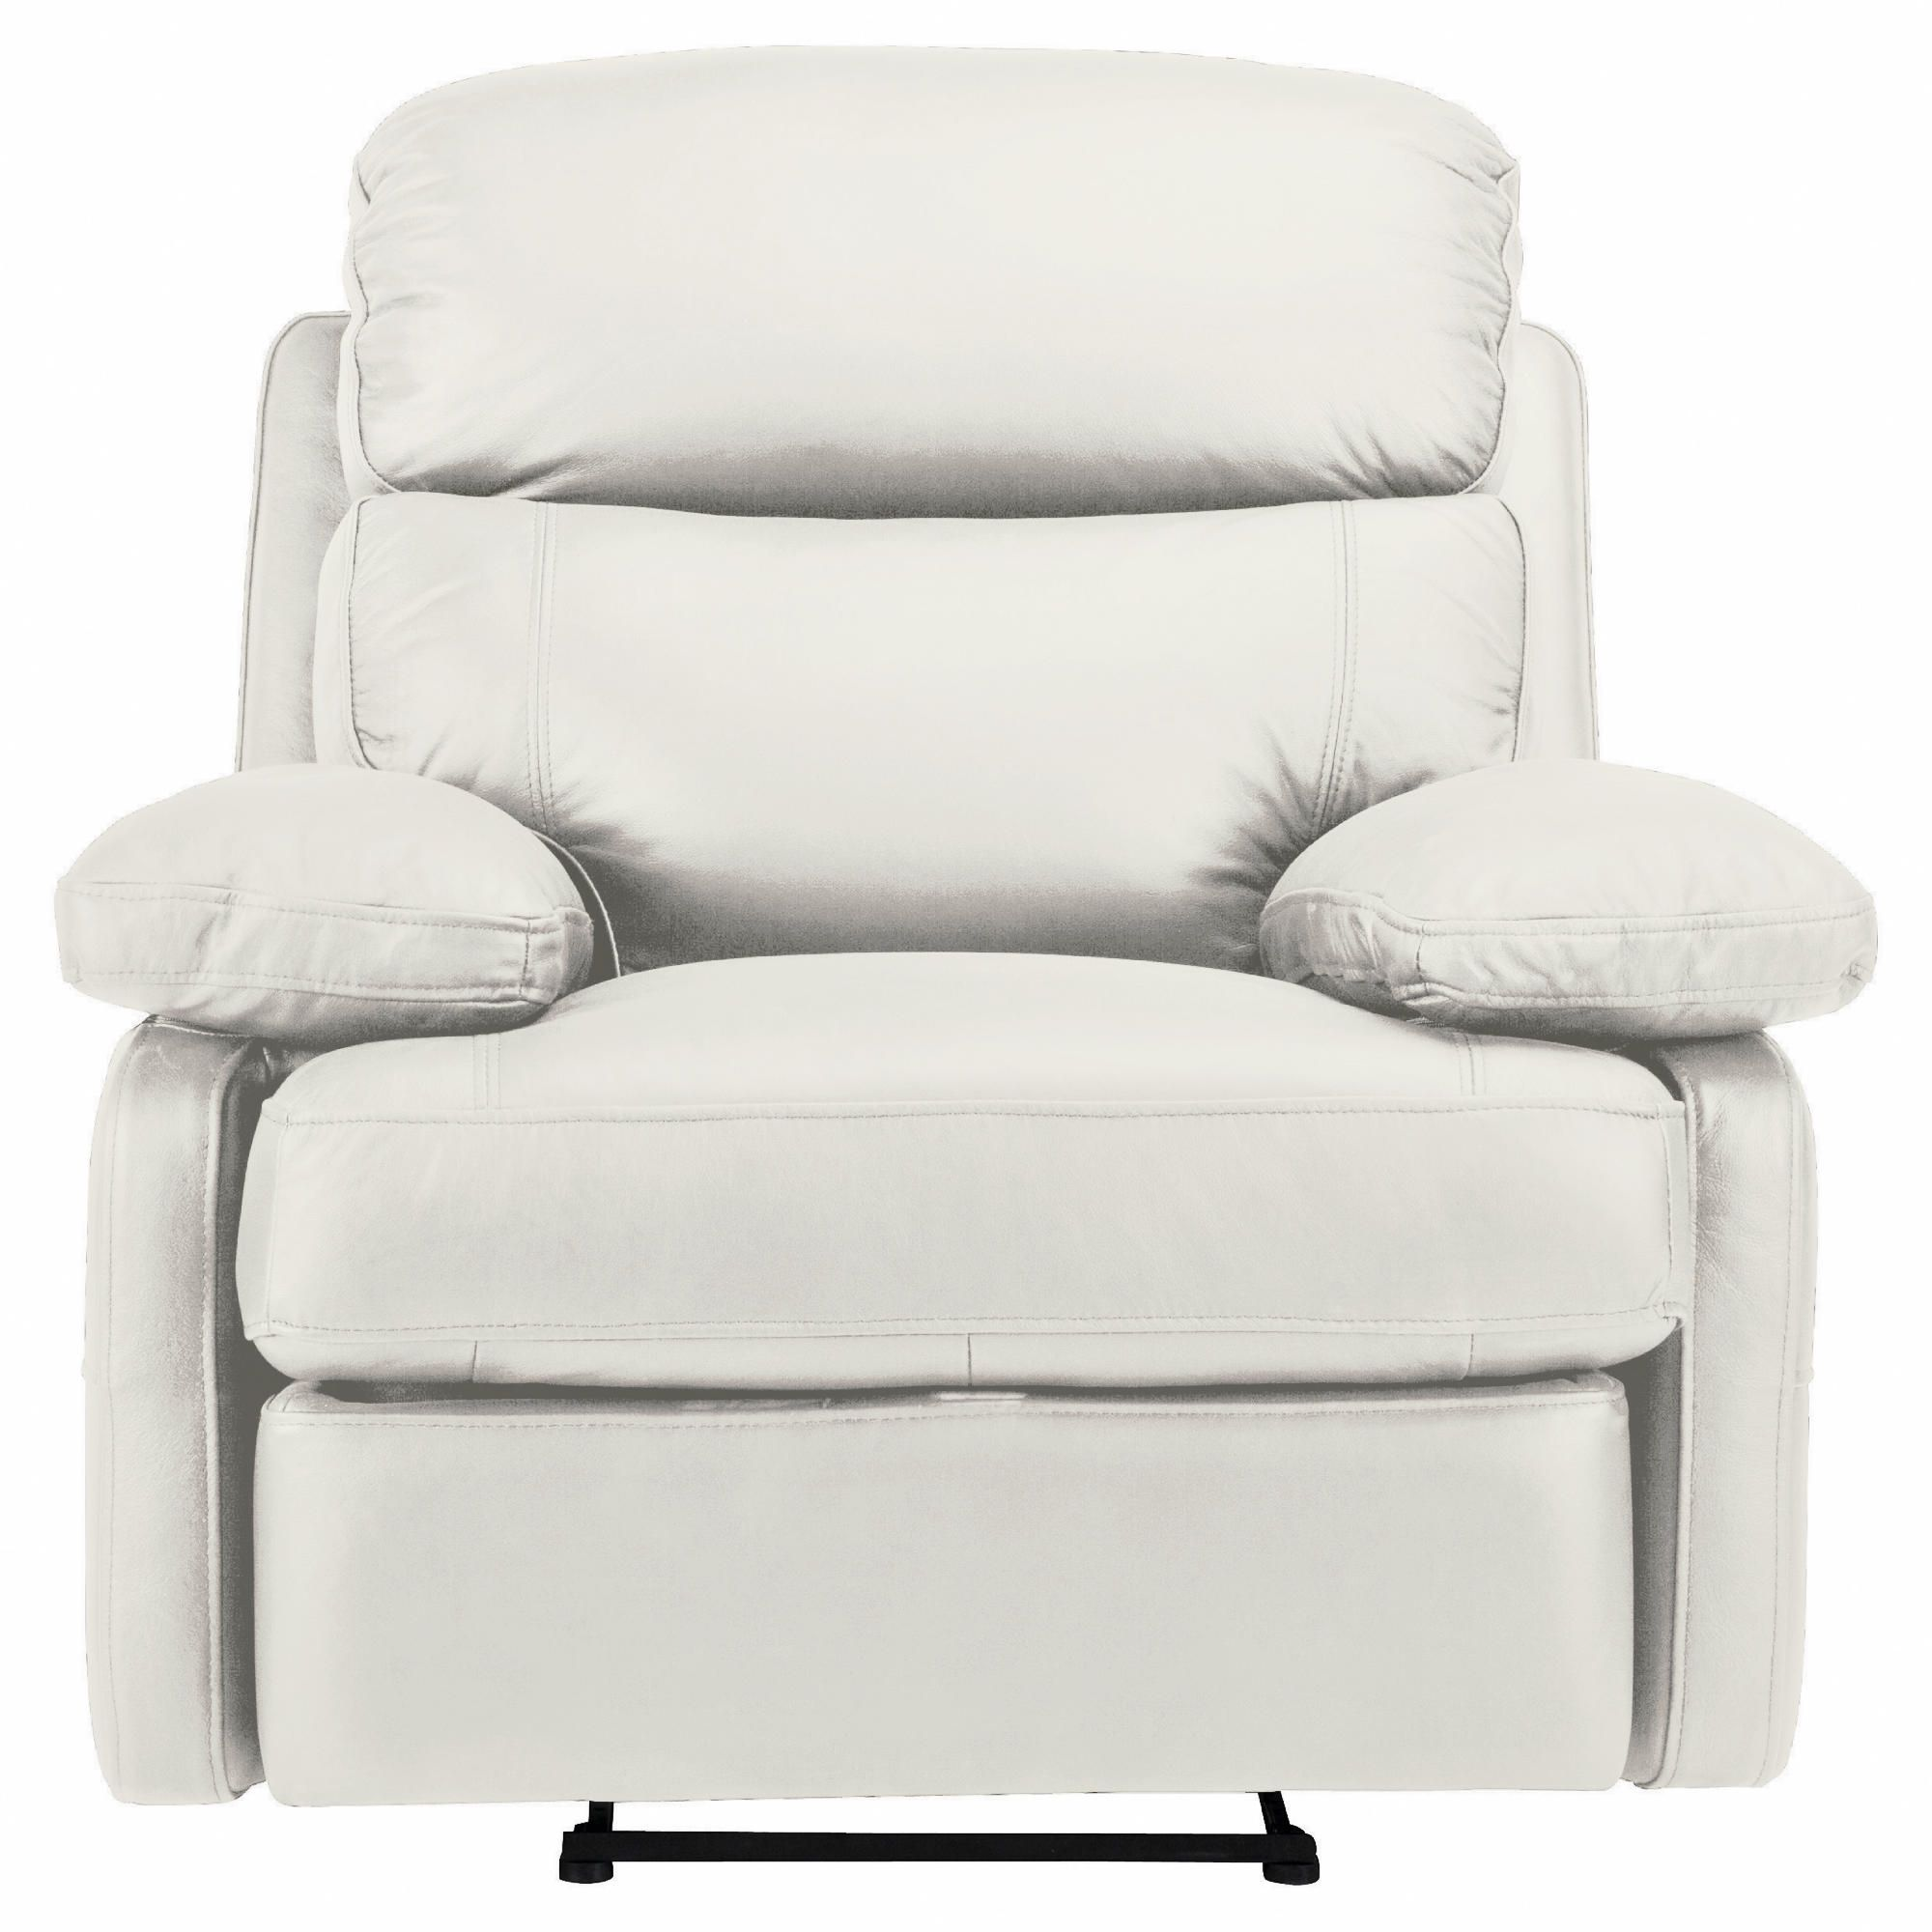 Cordova Leather Recliner Chair Ivory at Tesco Direct